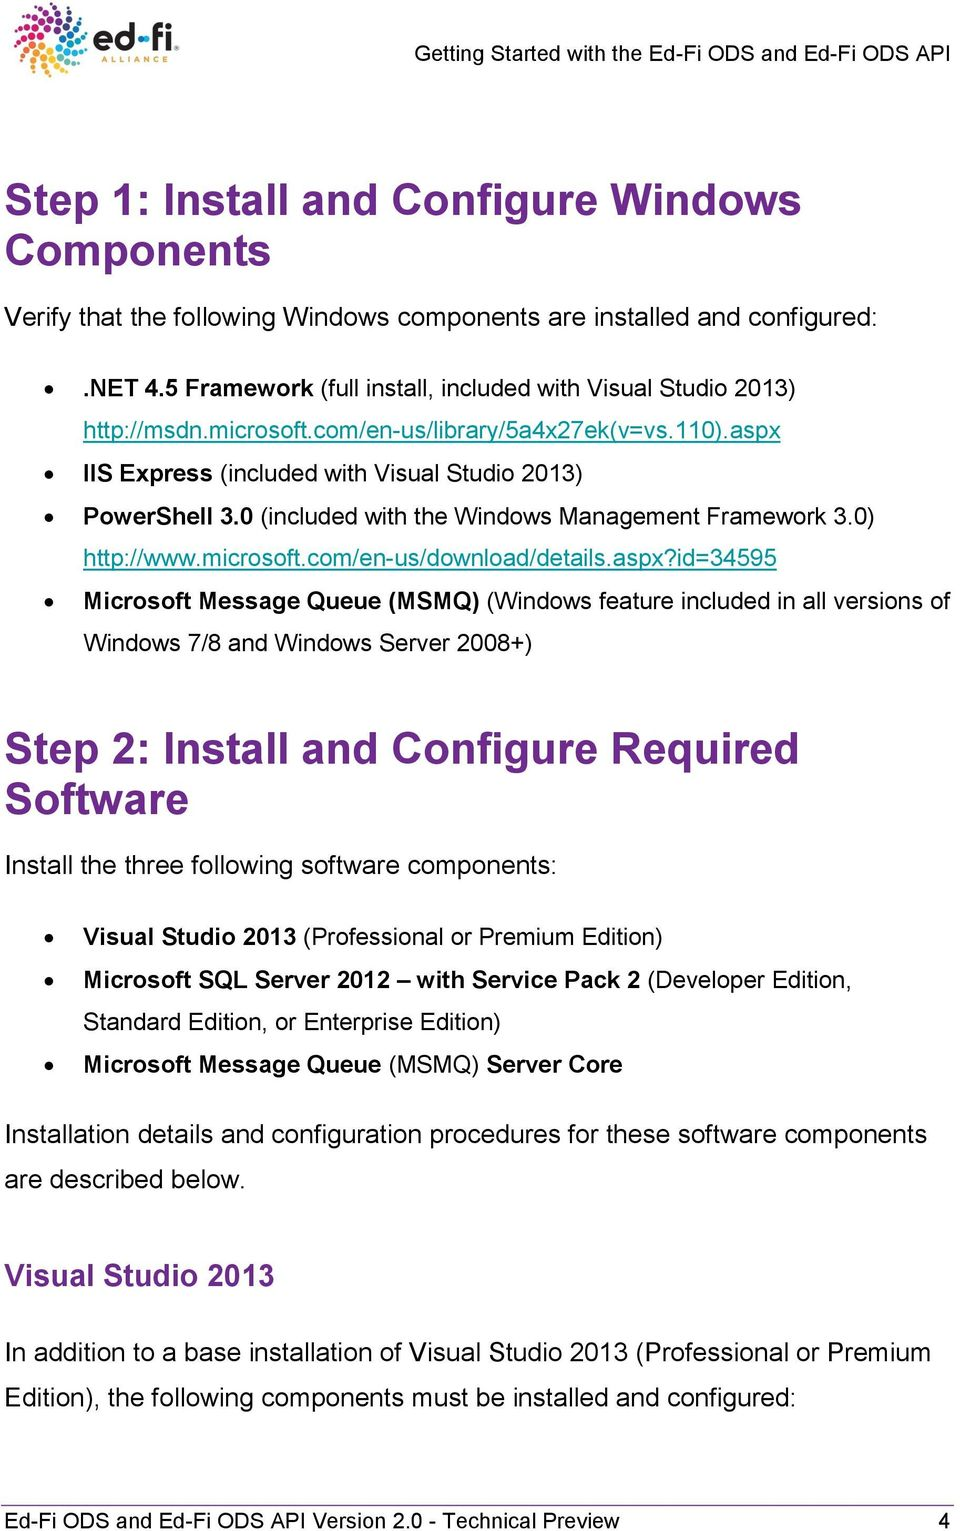 0 (included with the Windows Management Framework 3.0) http://www.microsoft.com/en-us/download/details.aspx?